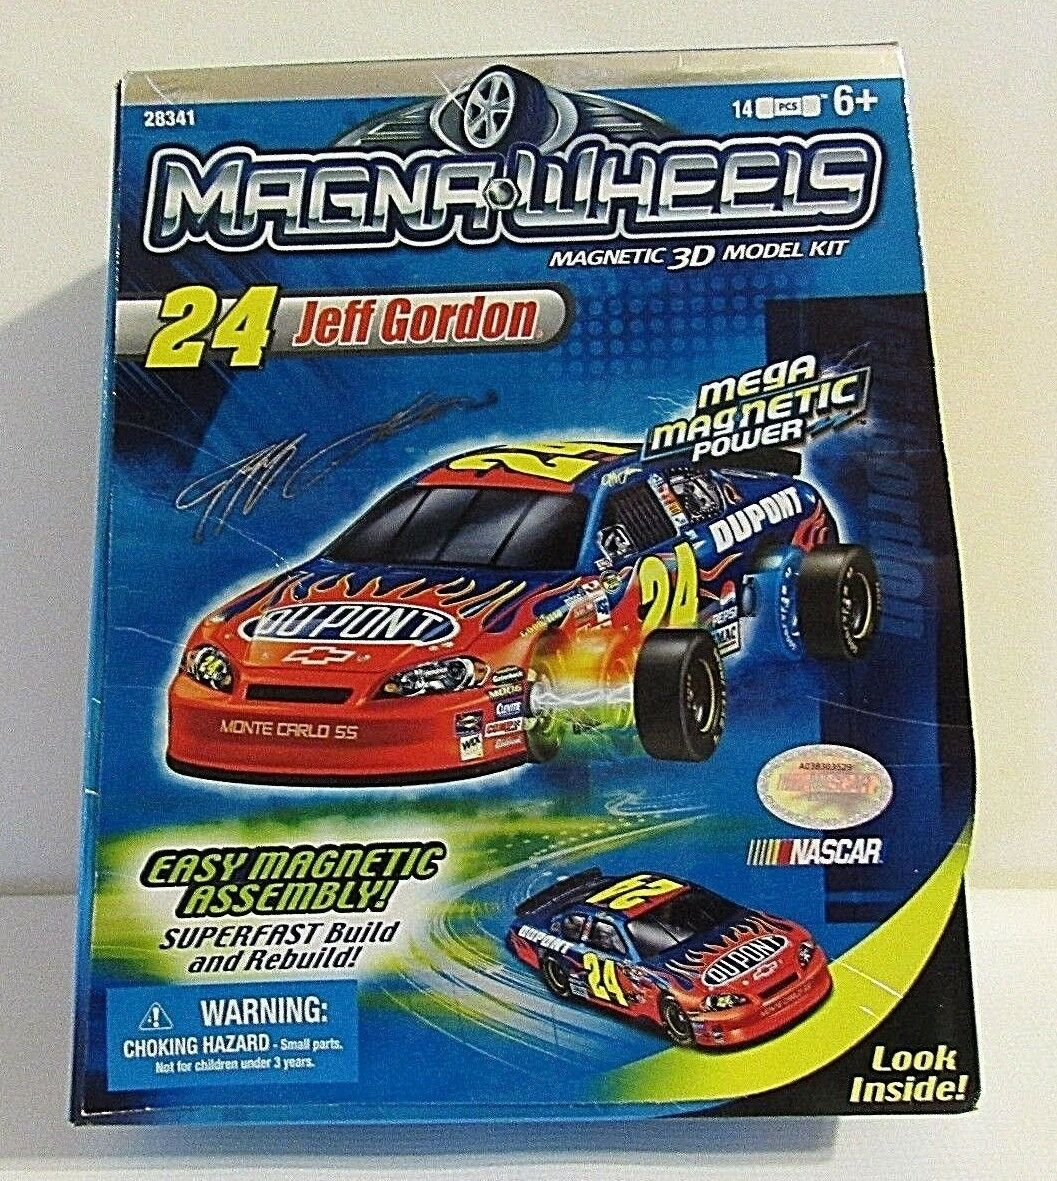 Magna Wheels Magnetic 3D Model Kit Jeff Gordon